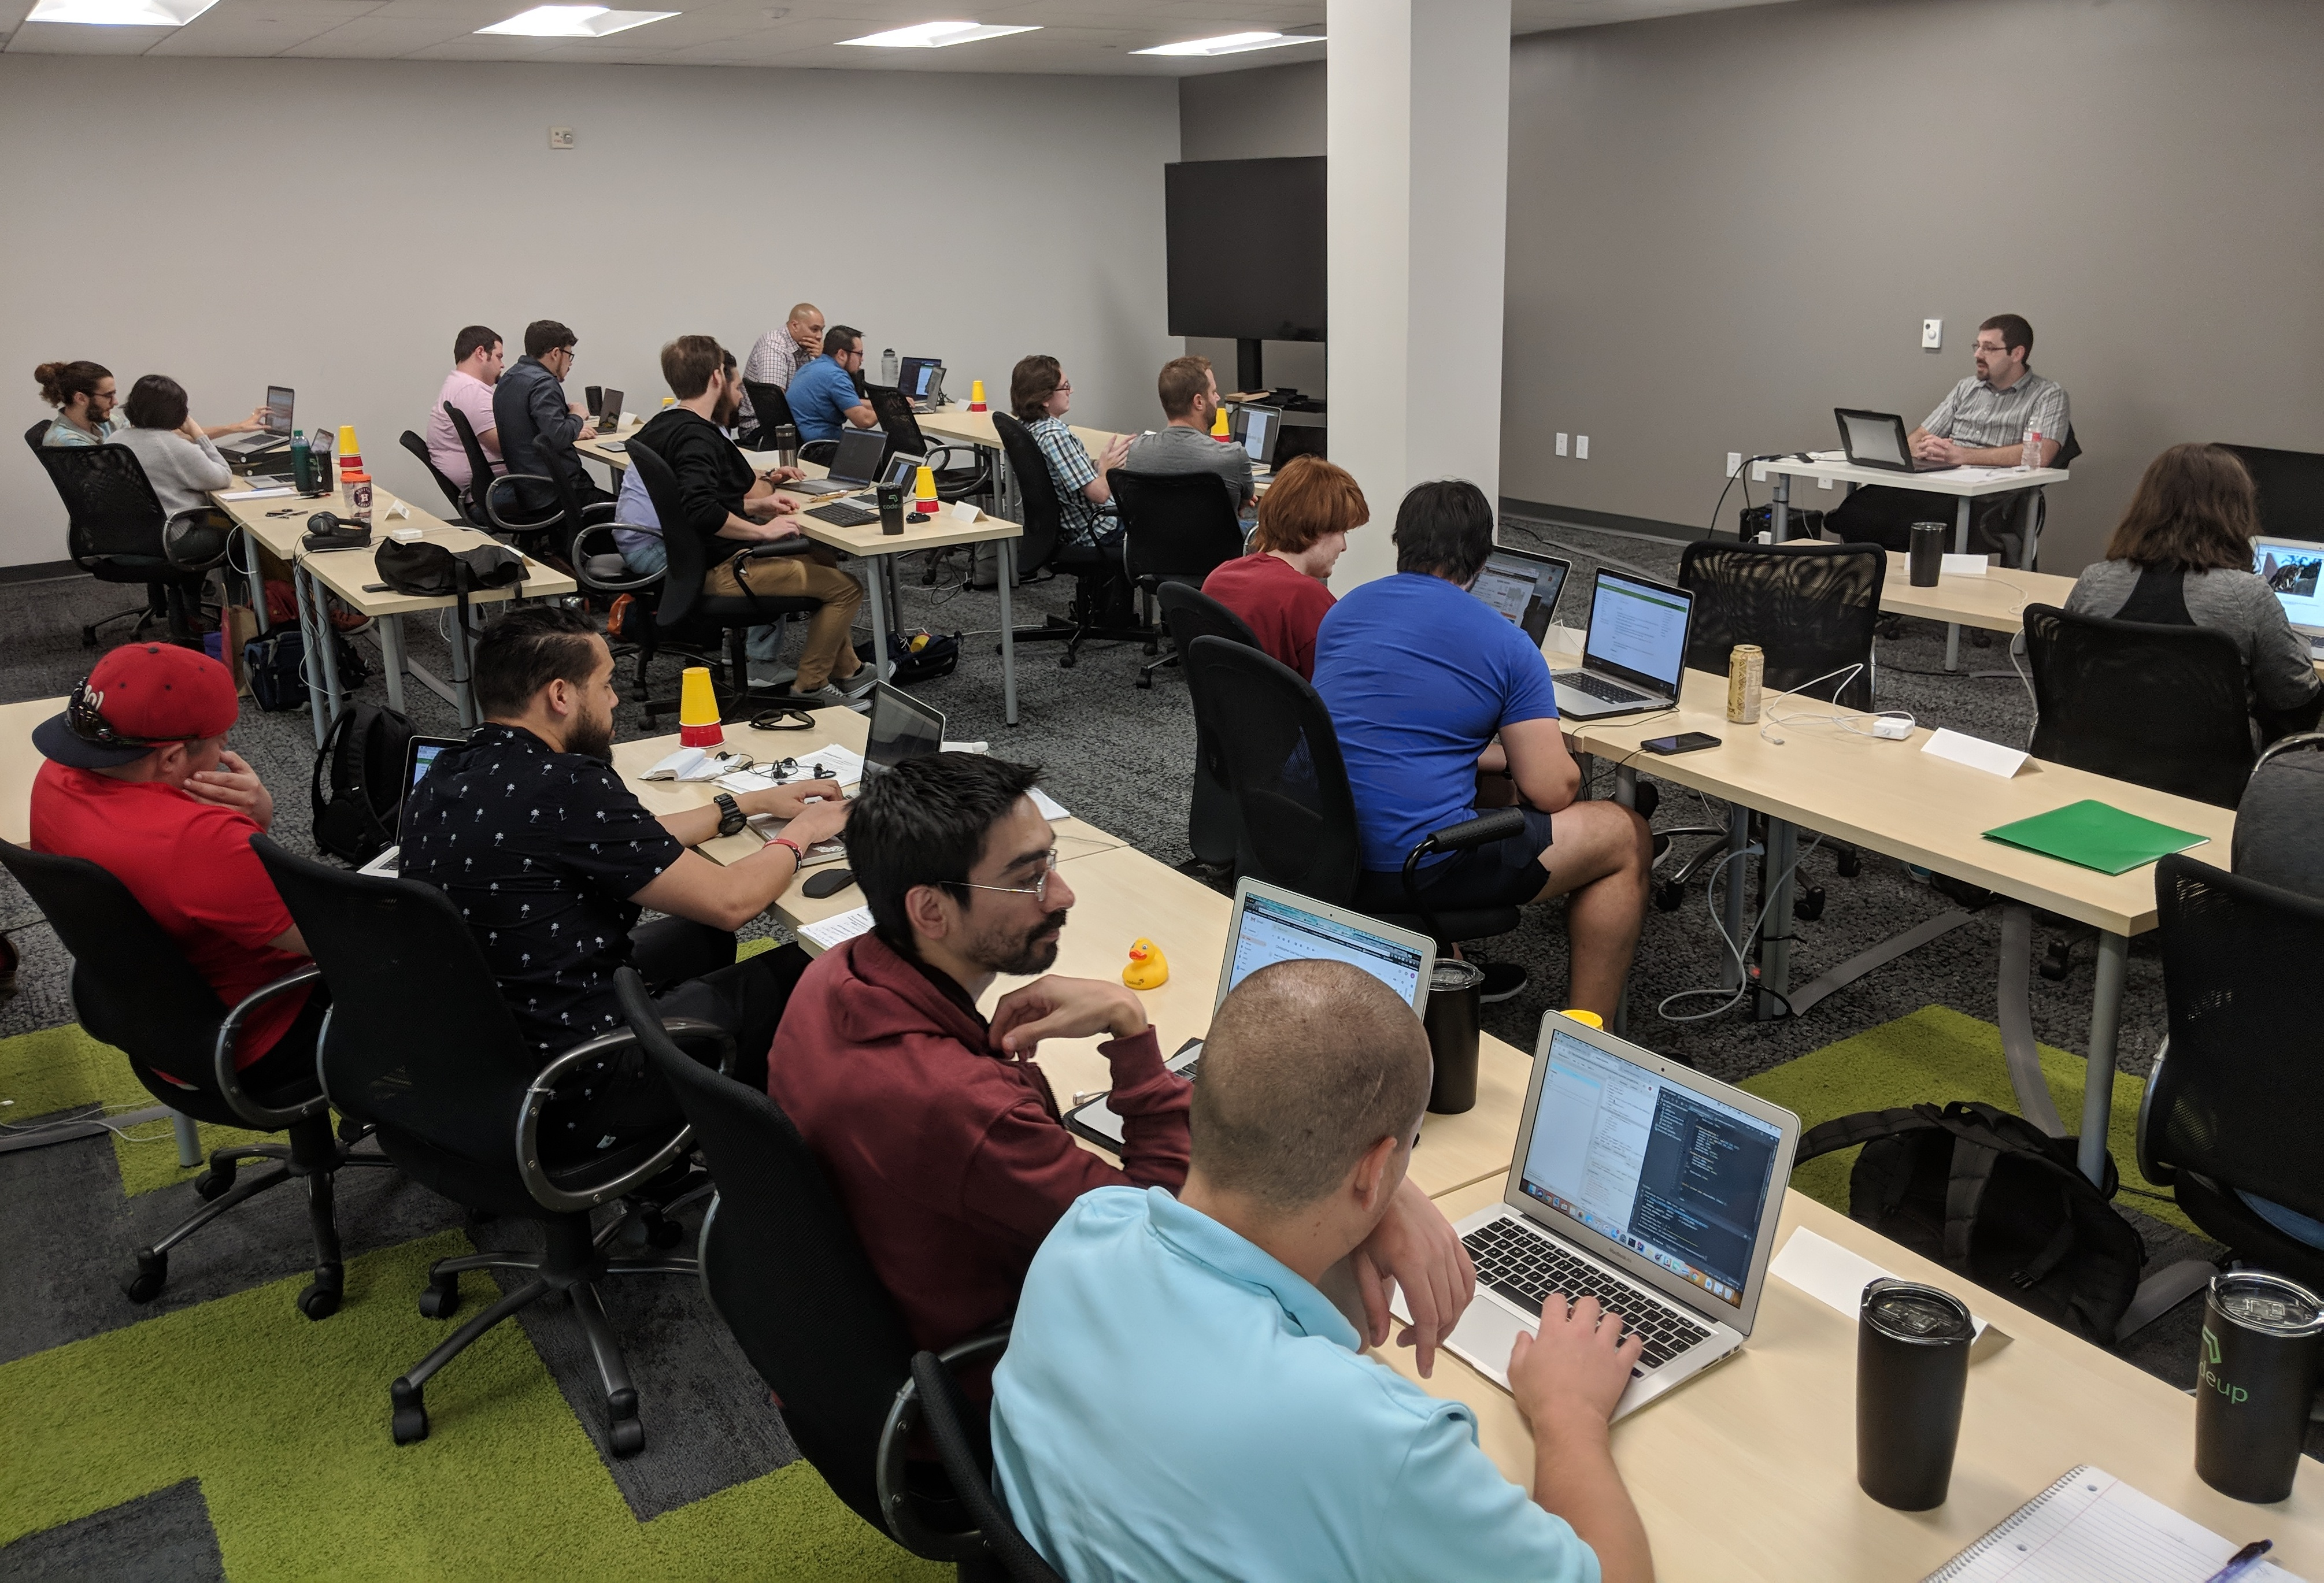 Students work in a Codeup web developer class. Photo credit: Startups San Antonio.